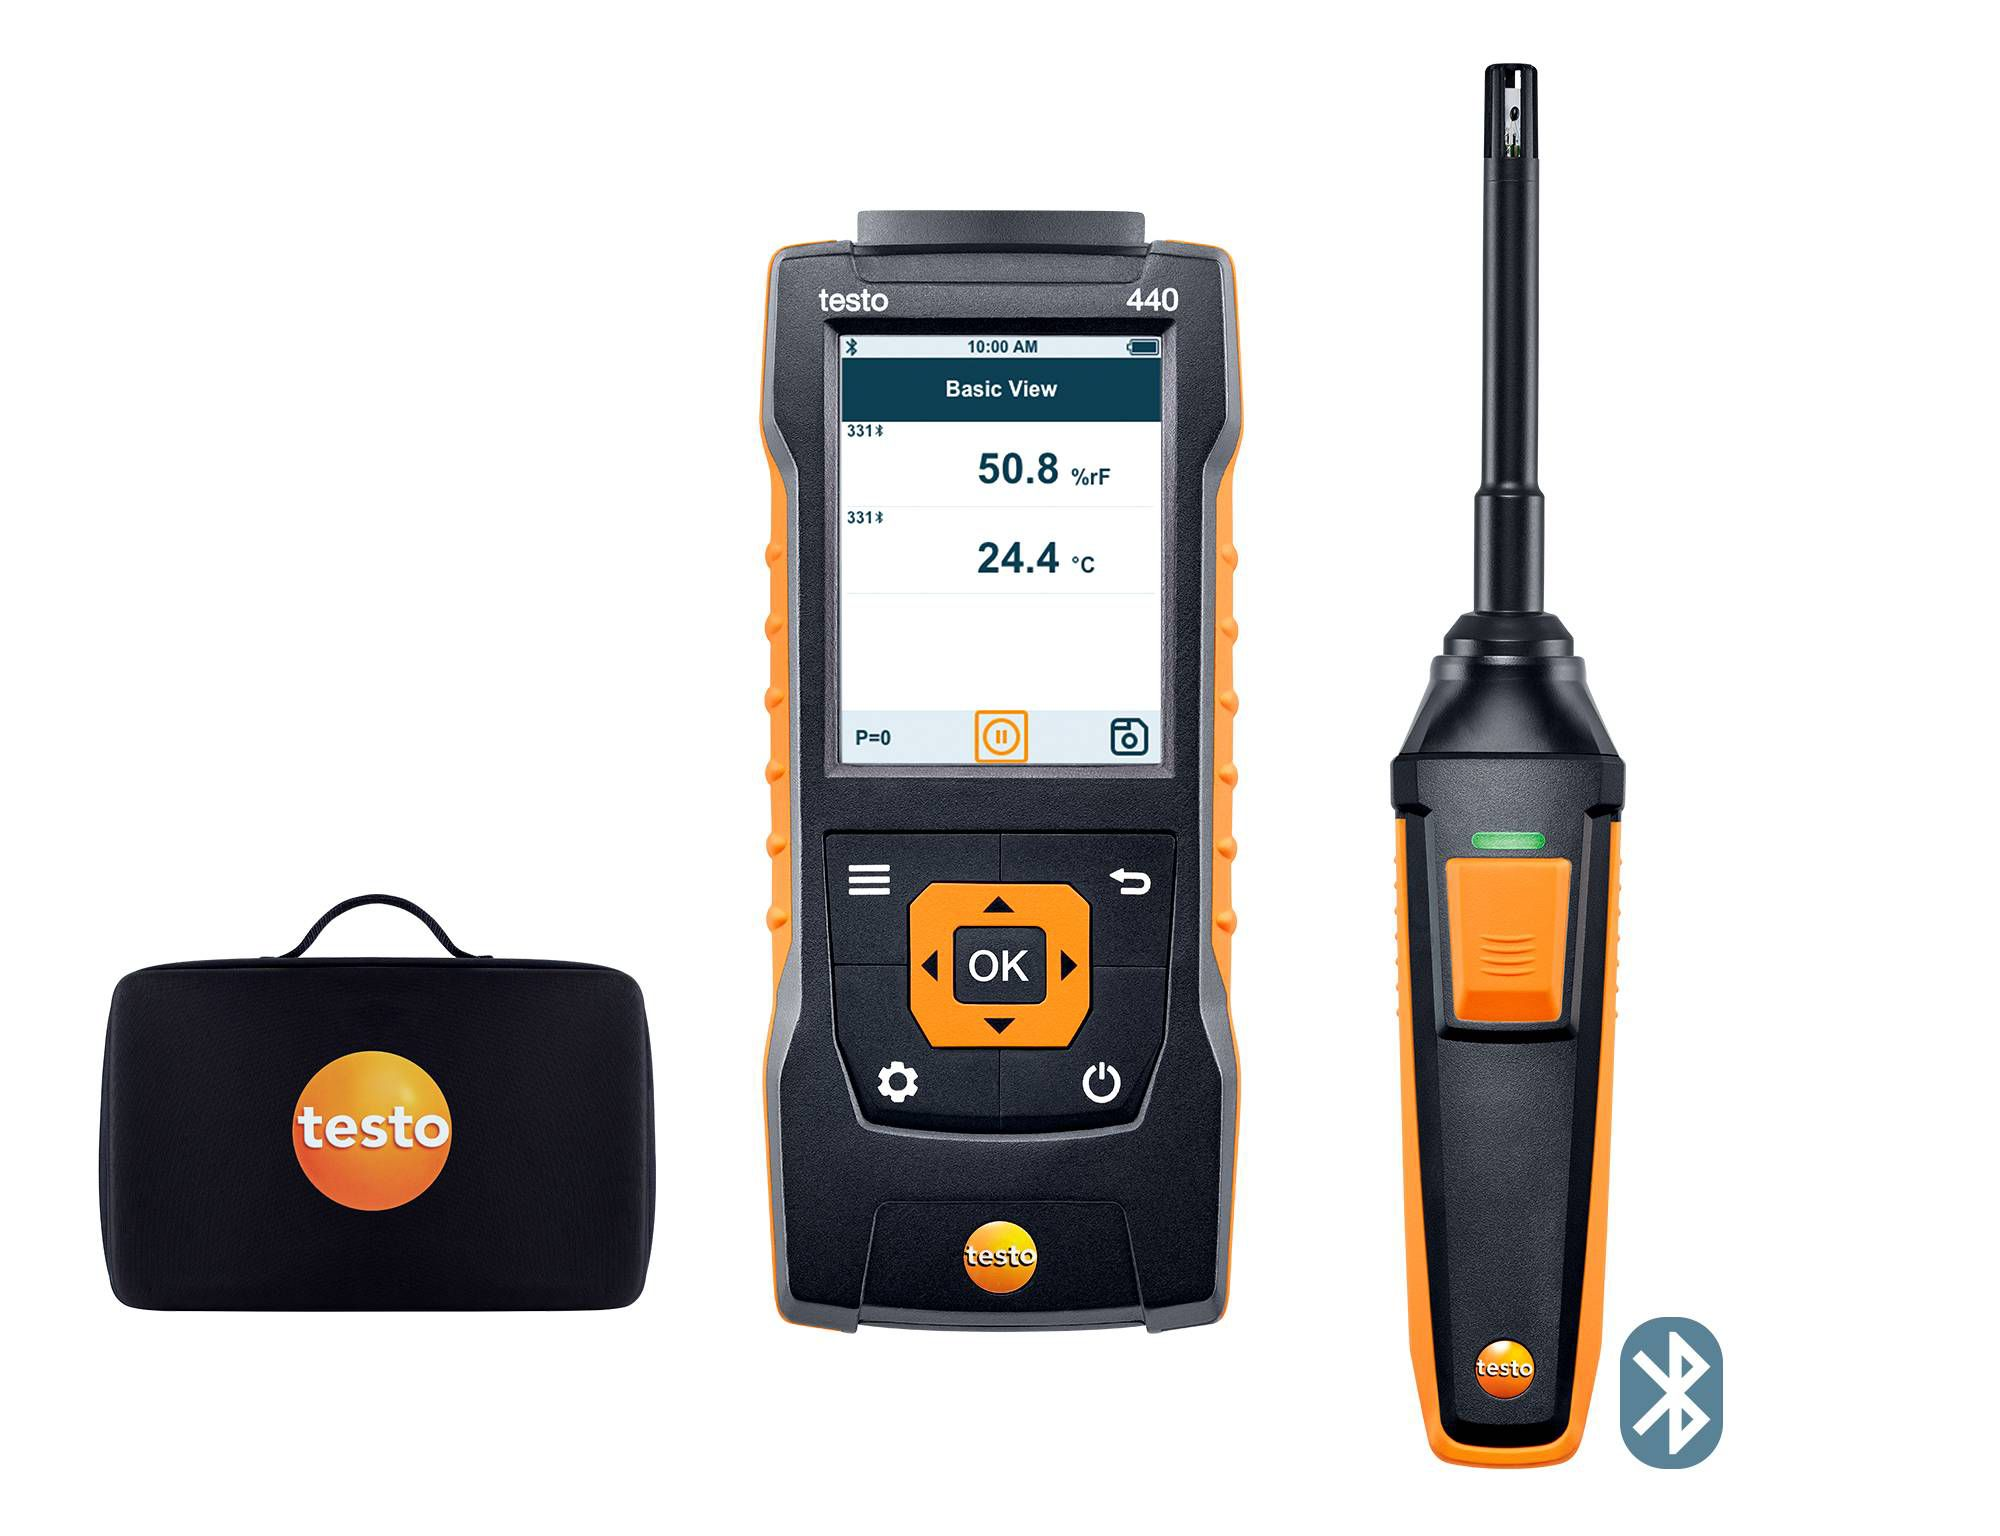 testo 440 Humidity Kit with Bluetooth®